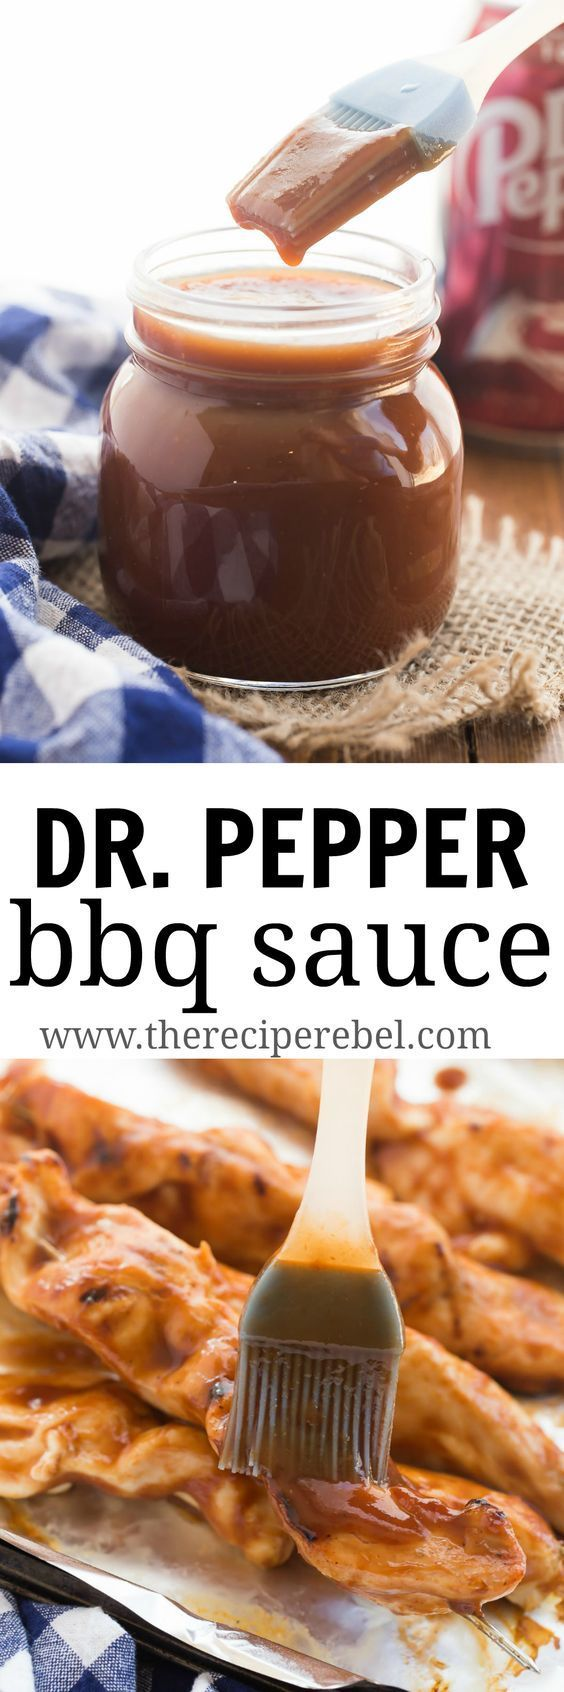 This Easy Homemade Dr. Pepper BBQ Sauce is sweet, sticky, and is great on grilled chicken, beef, pork or anything! Quit the store bought barbecue sauces and make your own! http://www.thereciperebel.com/easy-homemade-dr-pepper-bbq-sauce/